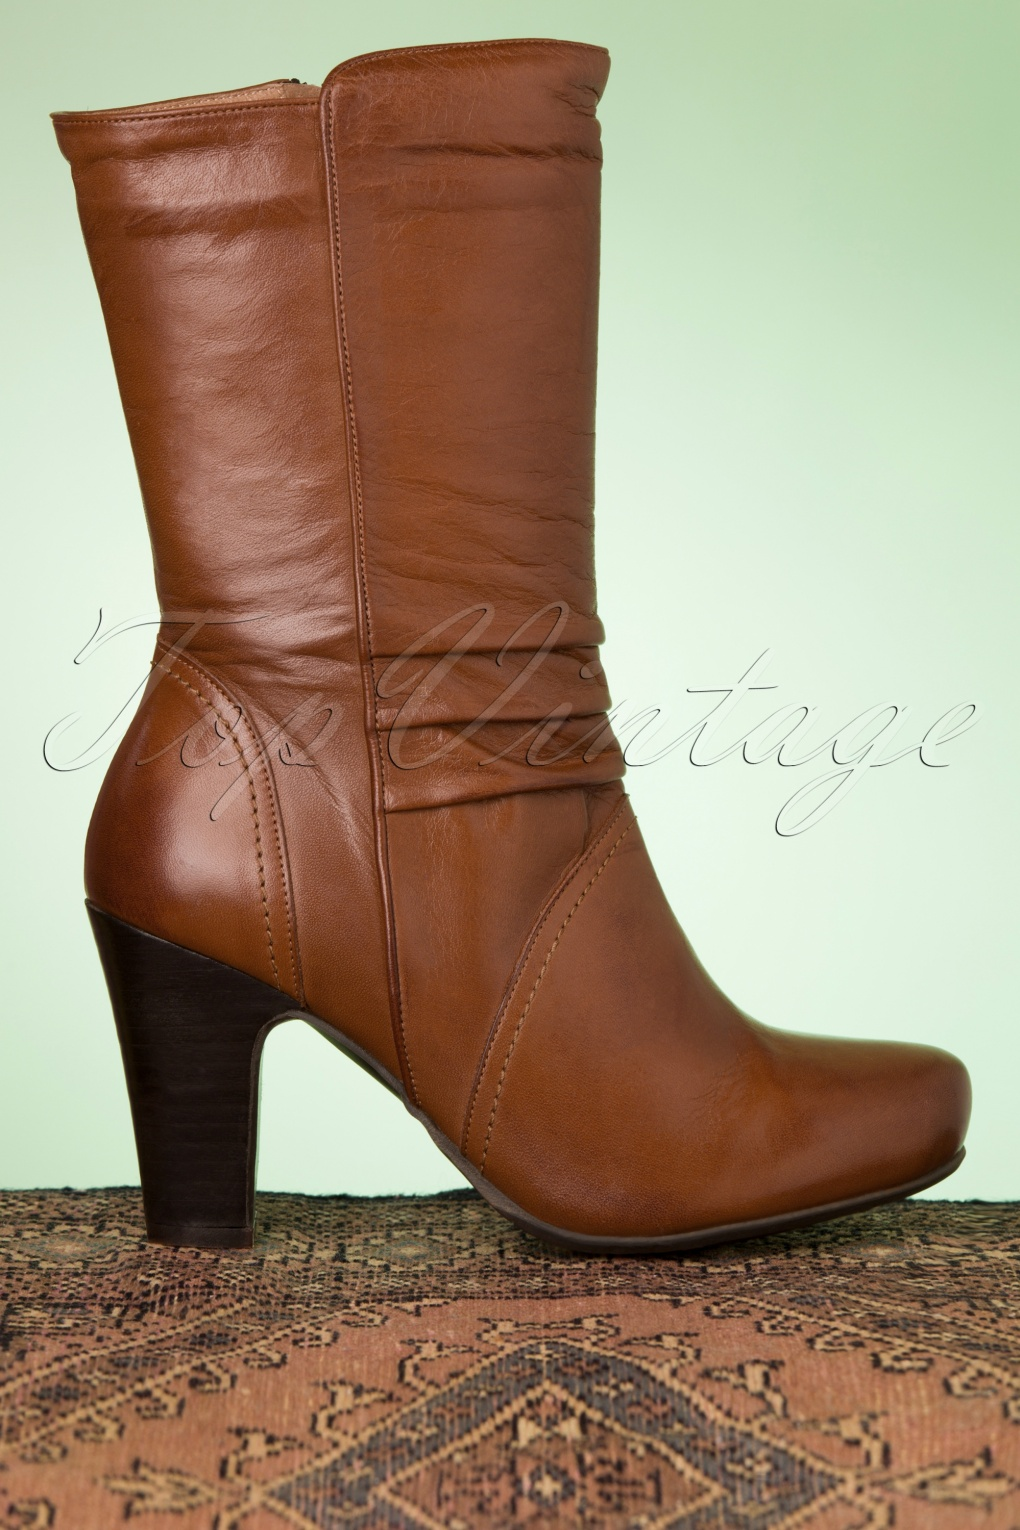 70s Shoes, Platforms, Boots, Heels | 1970s Shoes 70s Kellim Leather Boots in Brandy £154.02 AT vintagedancer.com